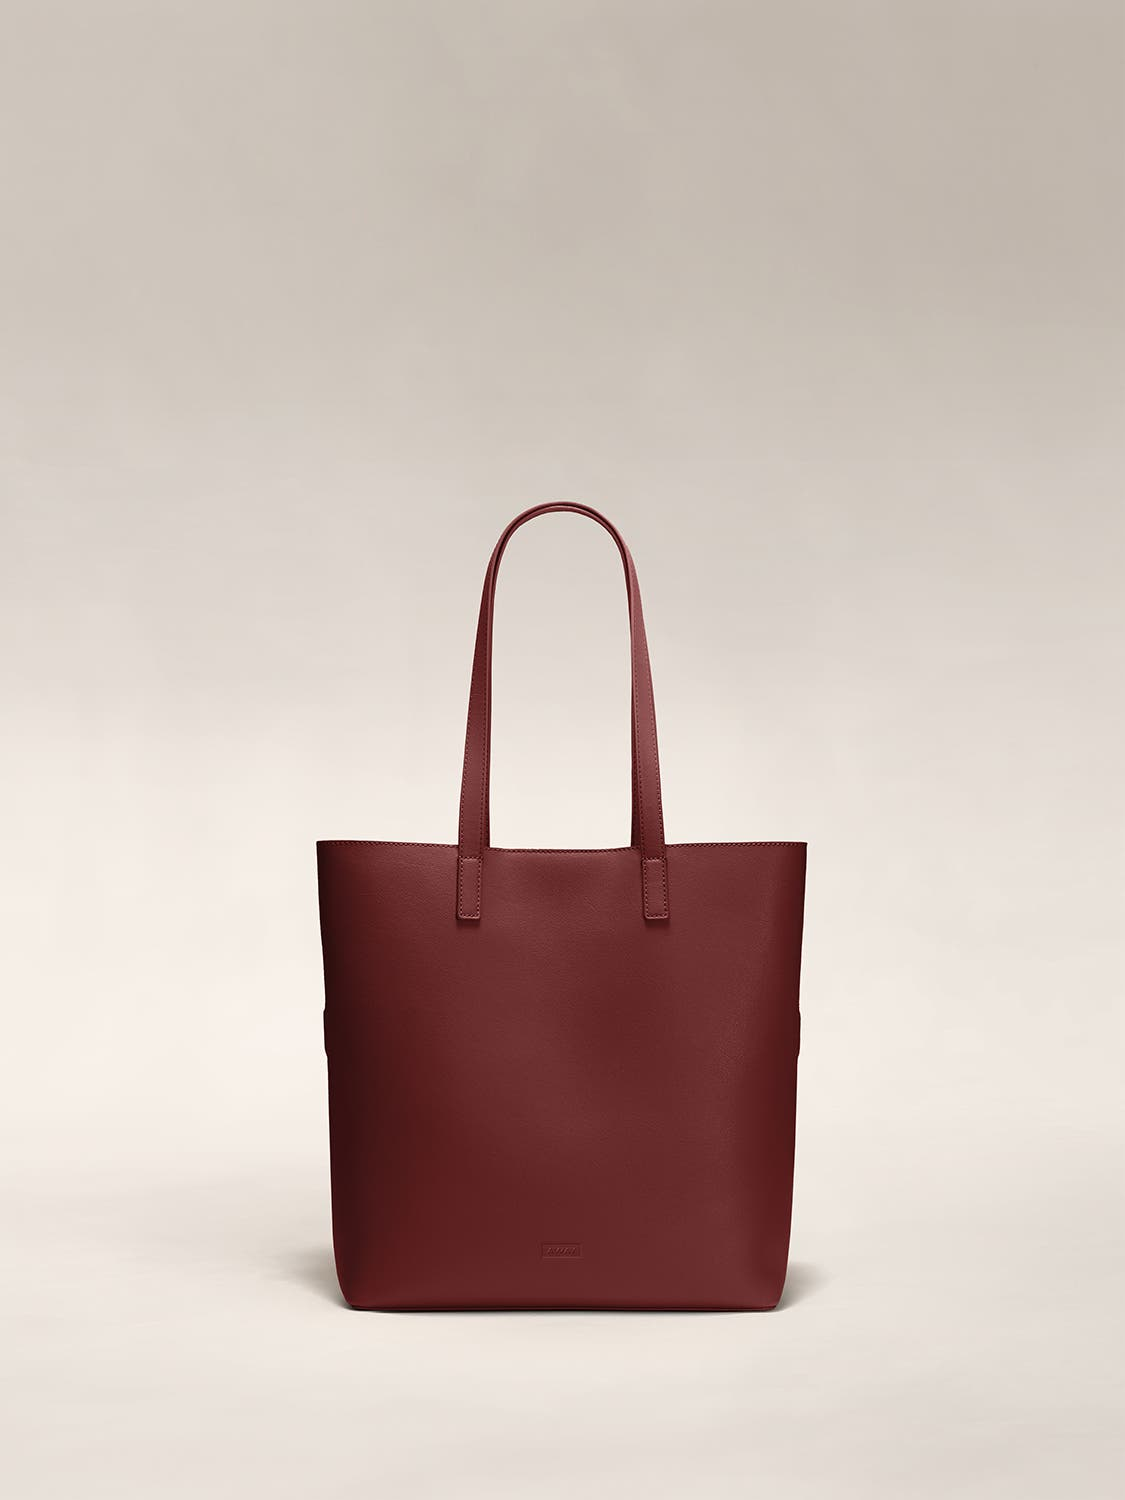 A ruby red tote shoulder bag in leather.